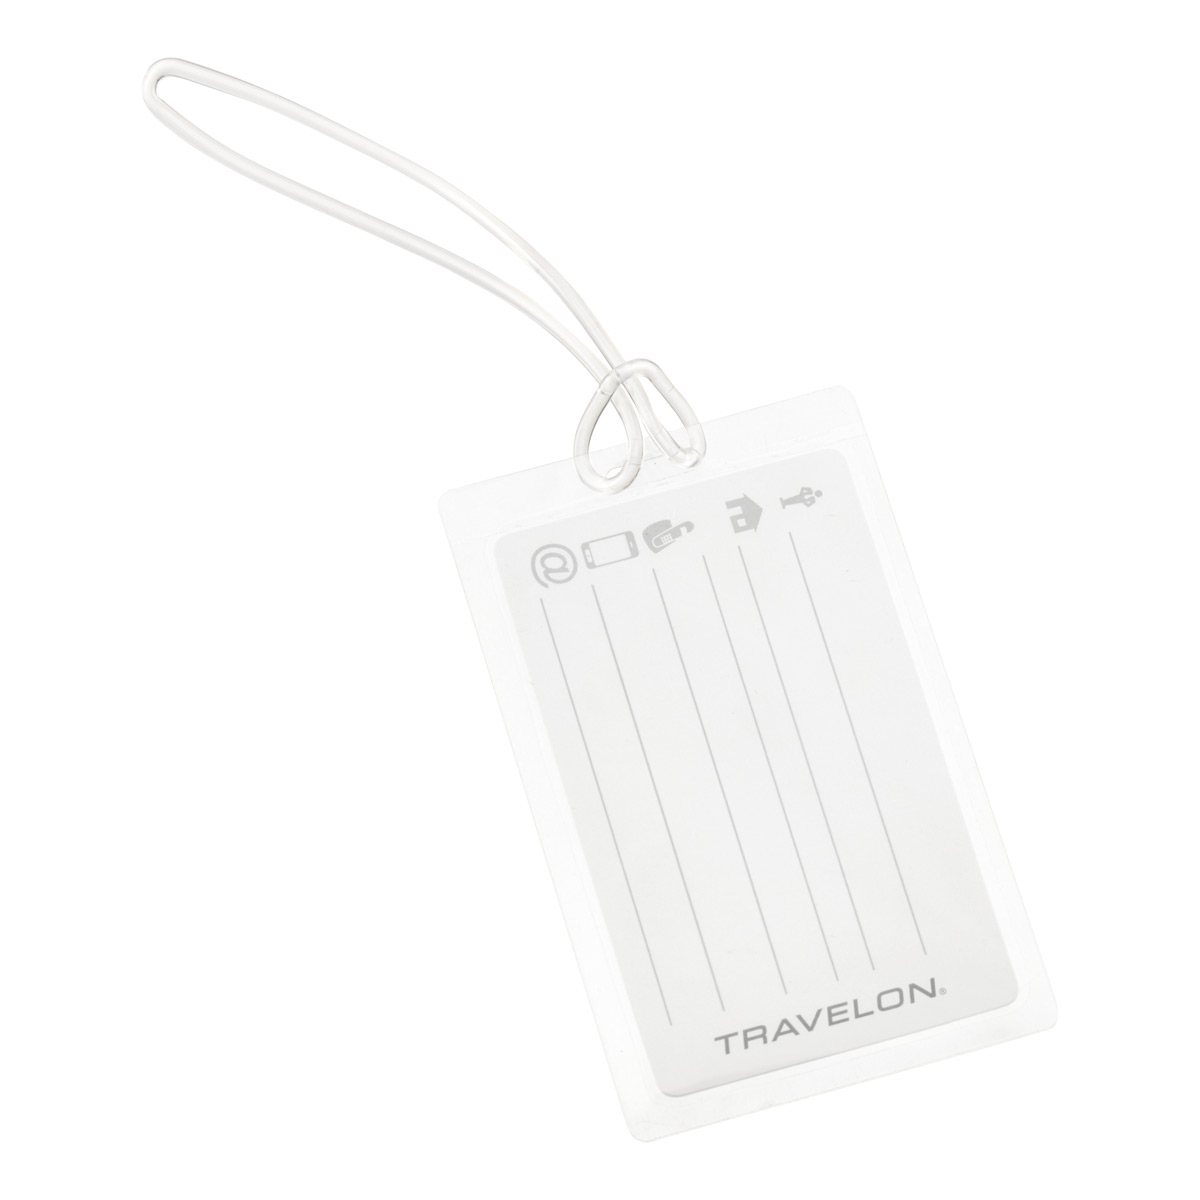 Self-Laminating Luggage Tags